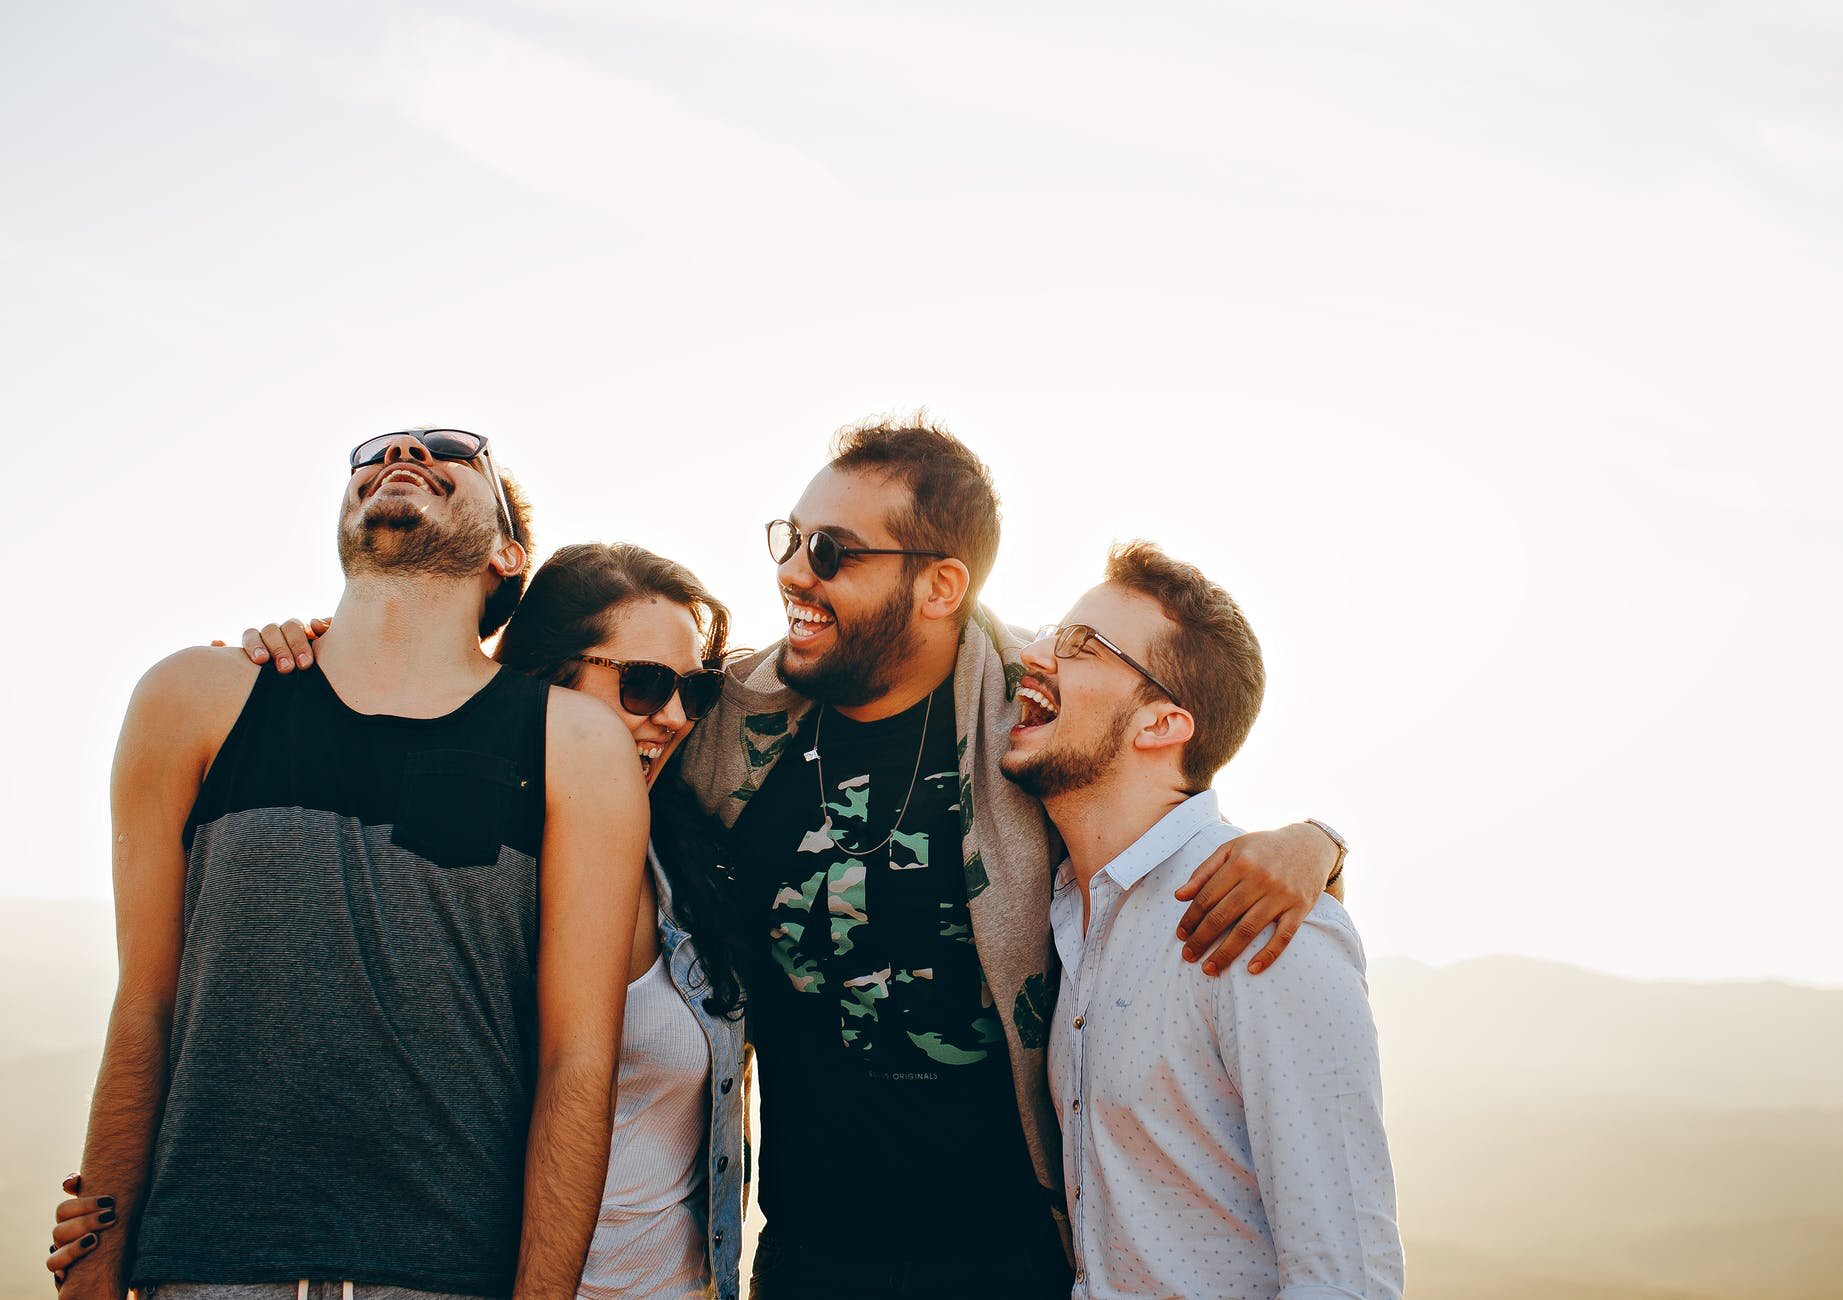 Group of people laughing